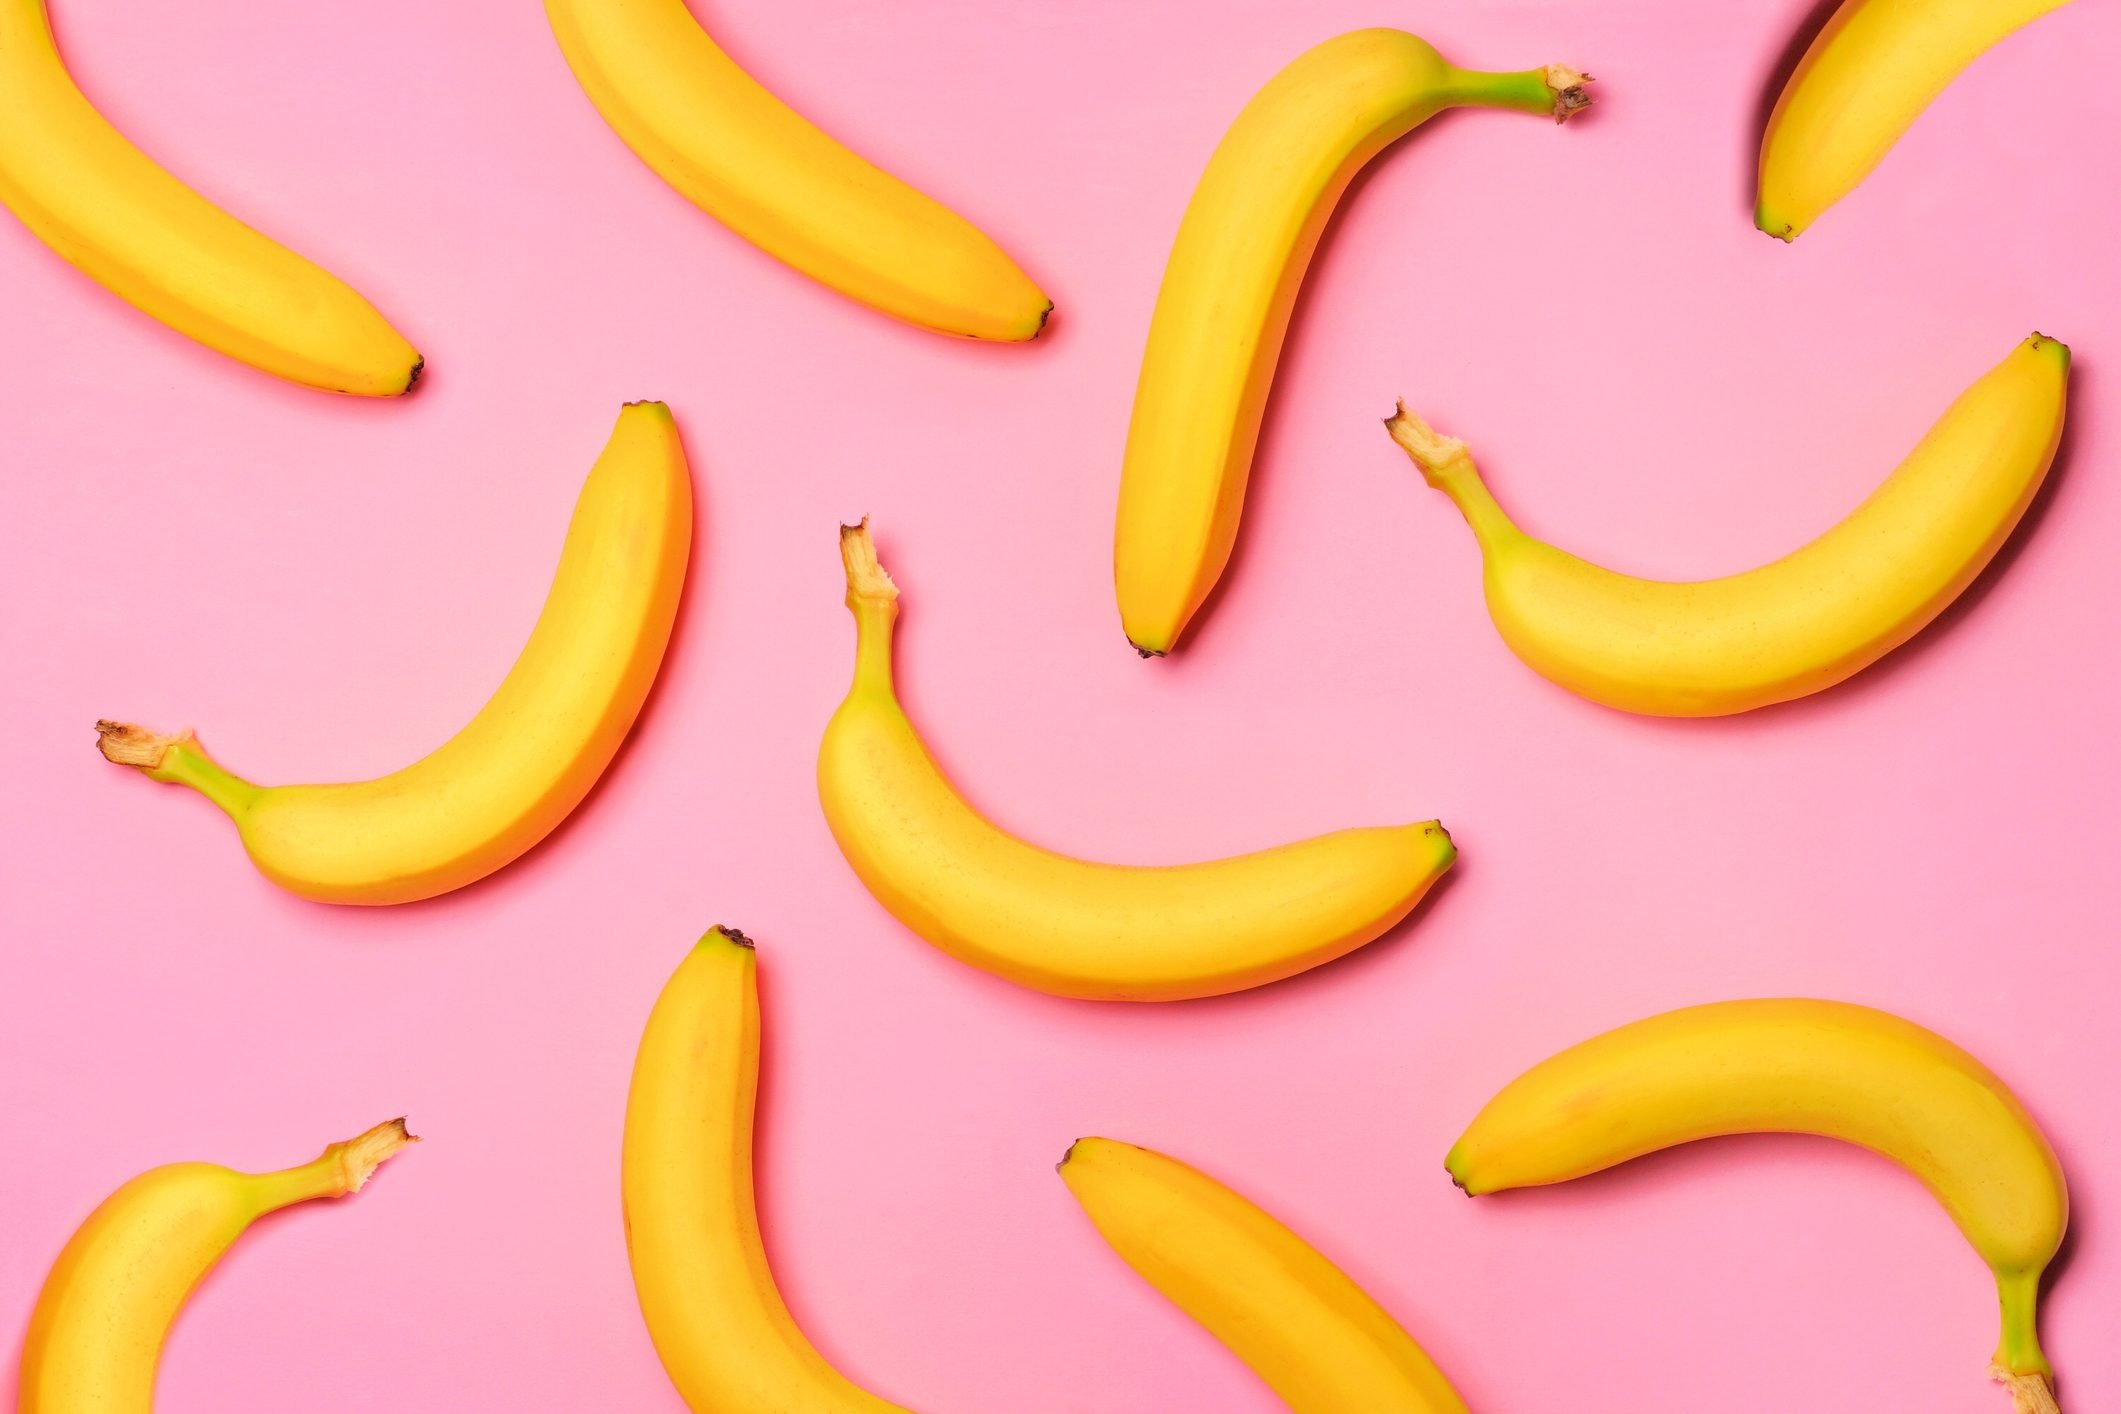 Fruit pattern of bananas over a pink background